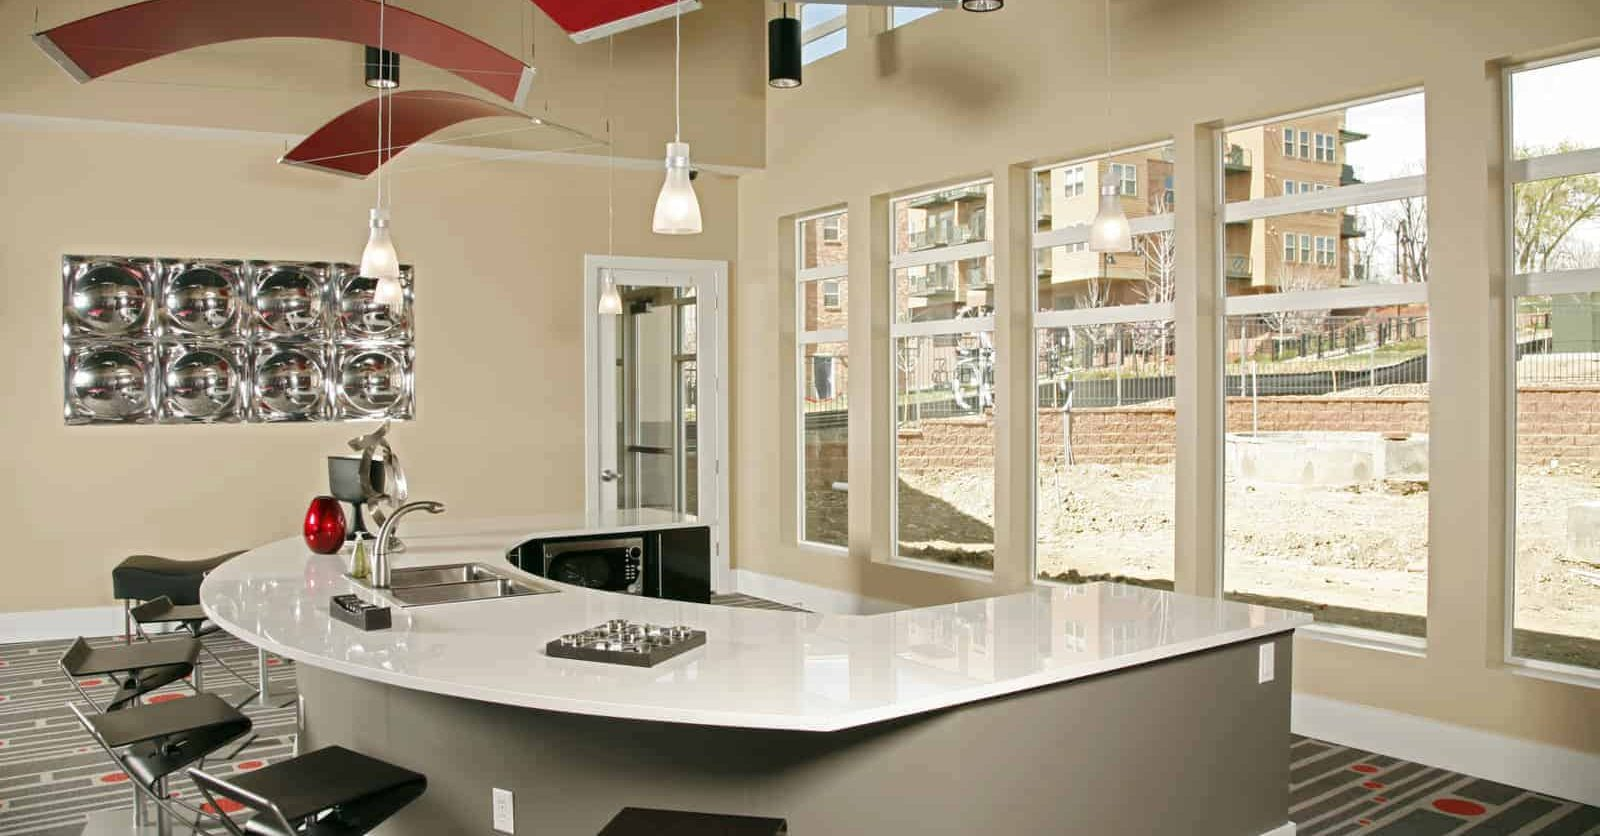 Common area kitchen with a u-shaped counter and barstool seating.